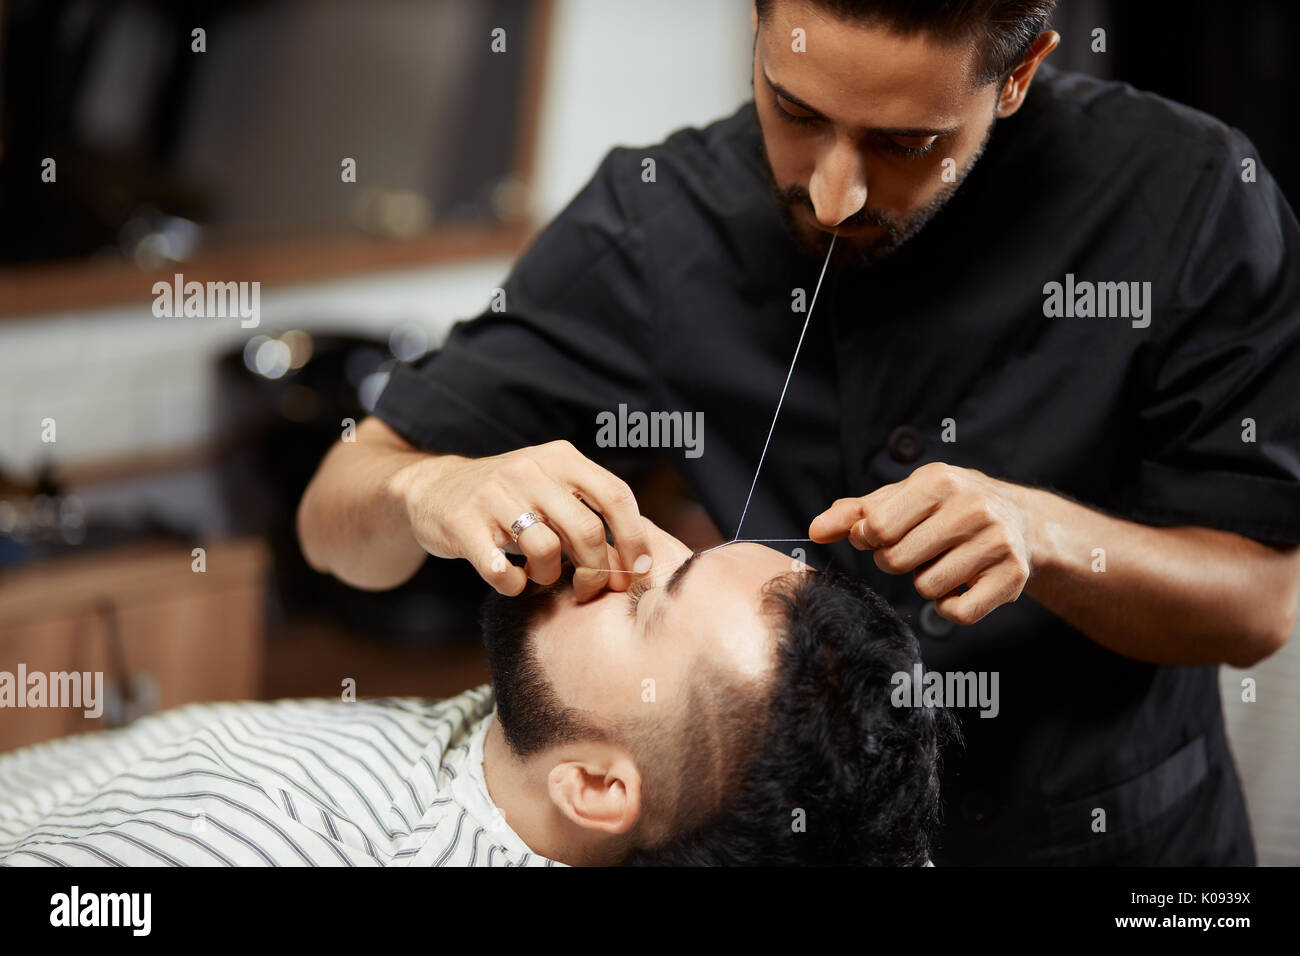 Barber grooming young man in chair - Stock Image